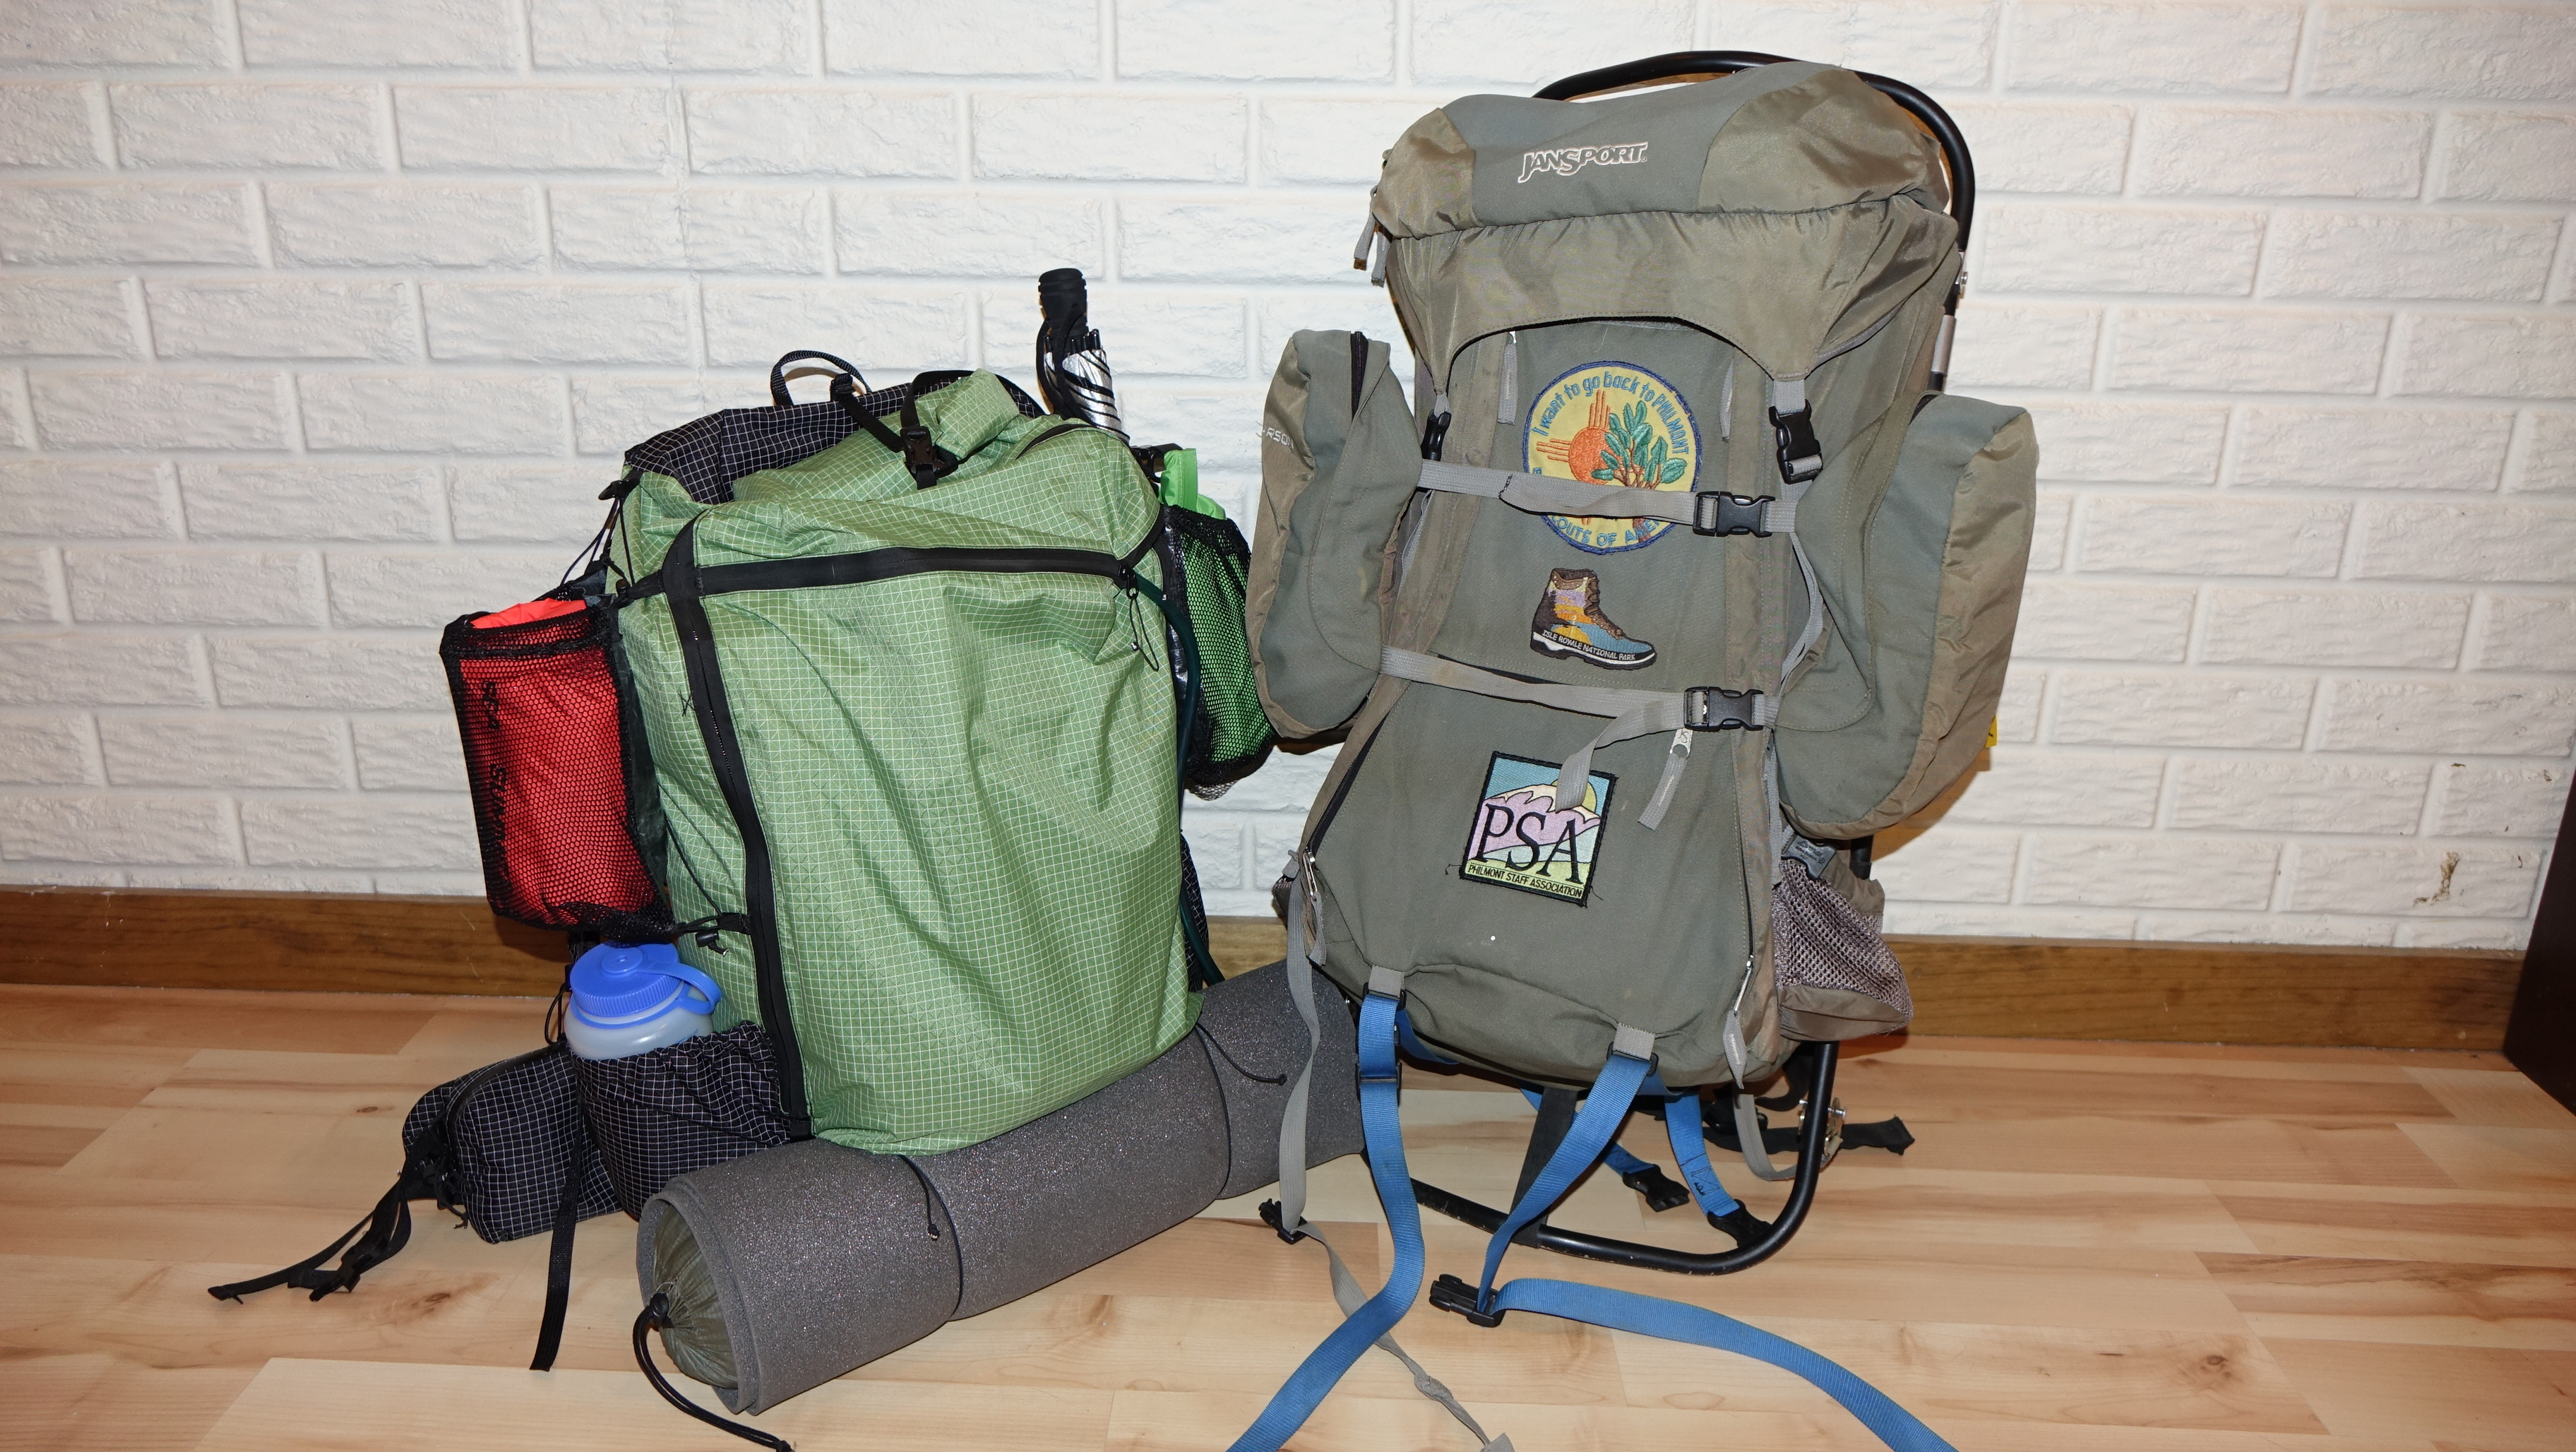 Today\'s Backpack Design and Utility: A Review - The Trek